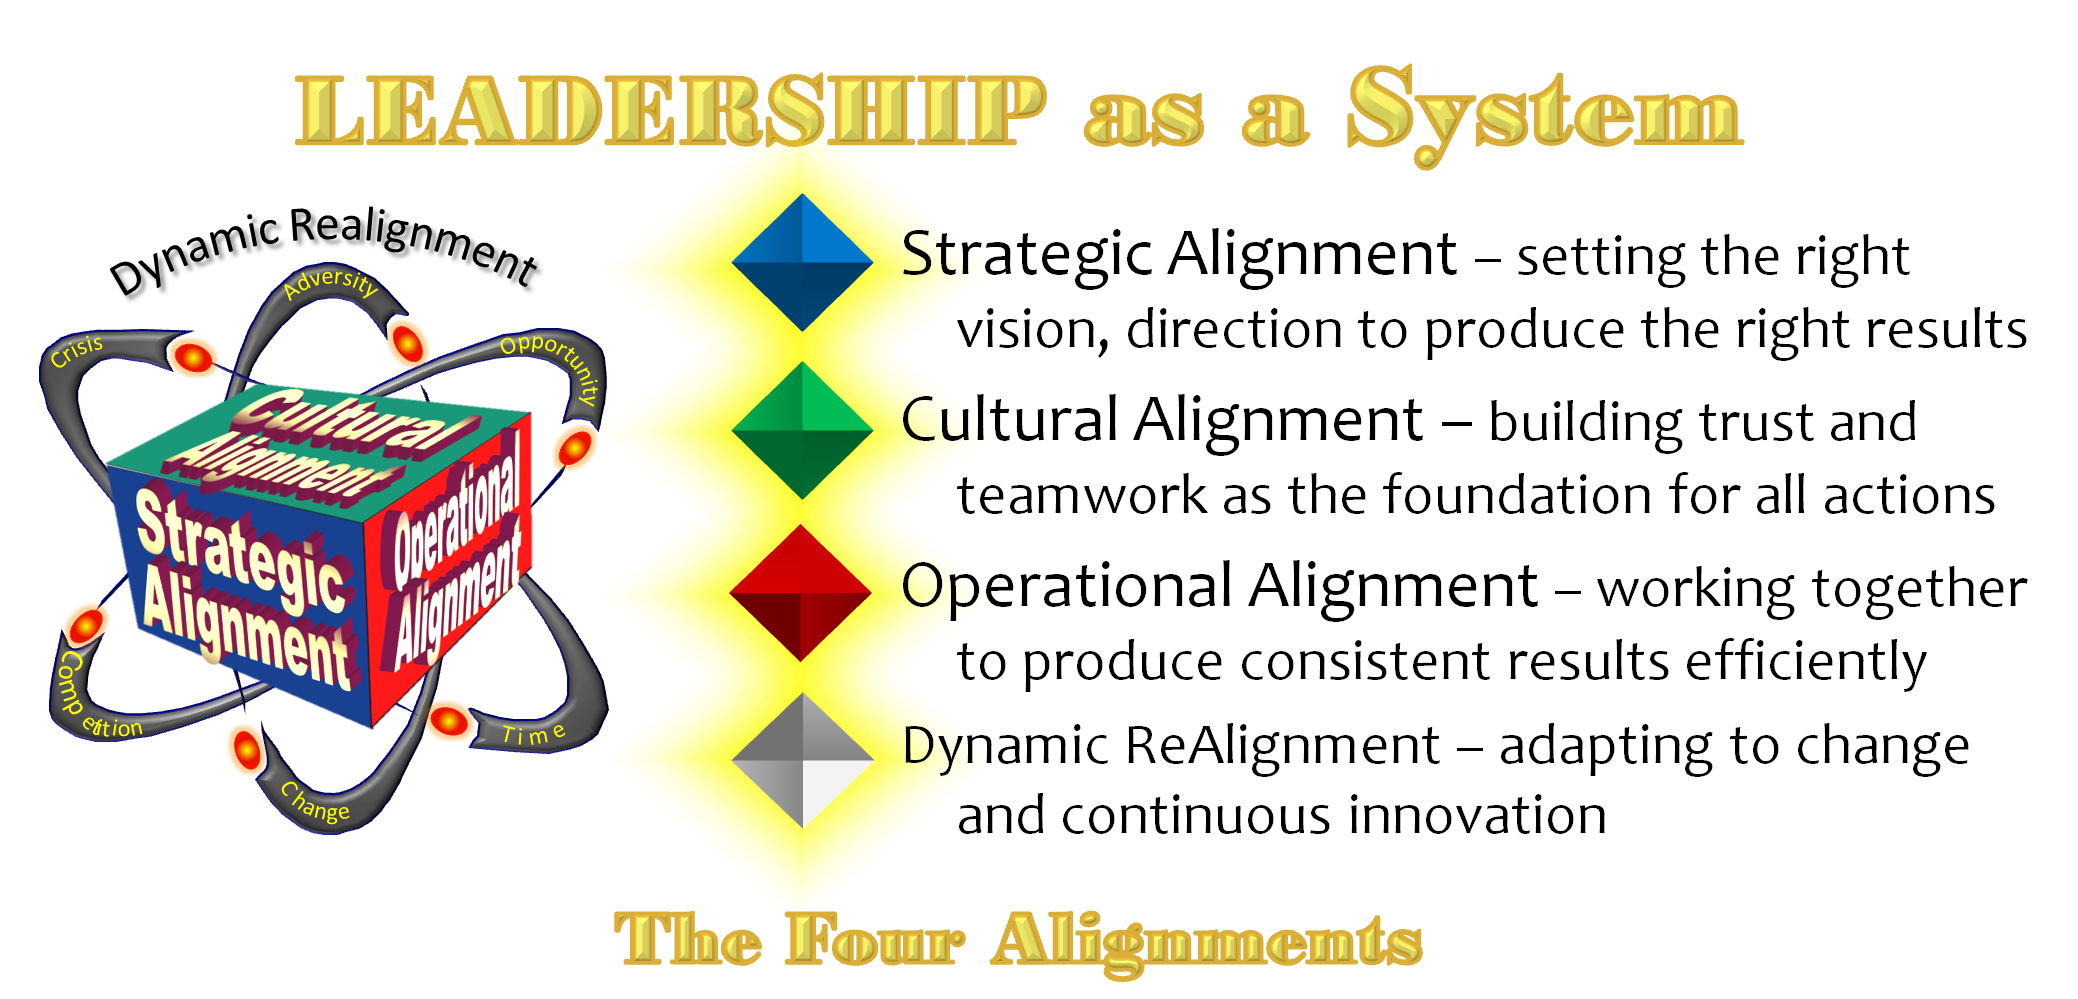 Leadership as a System Full